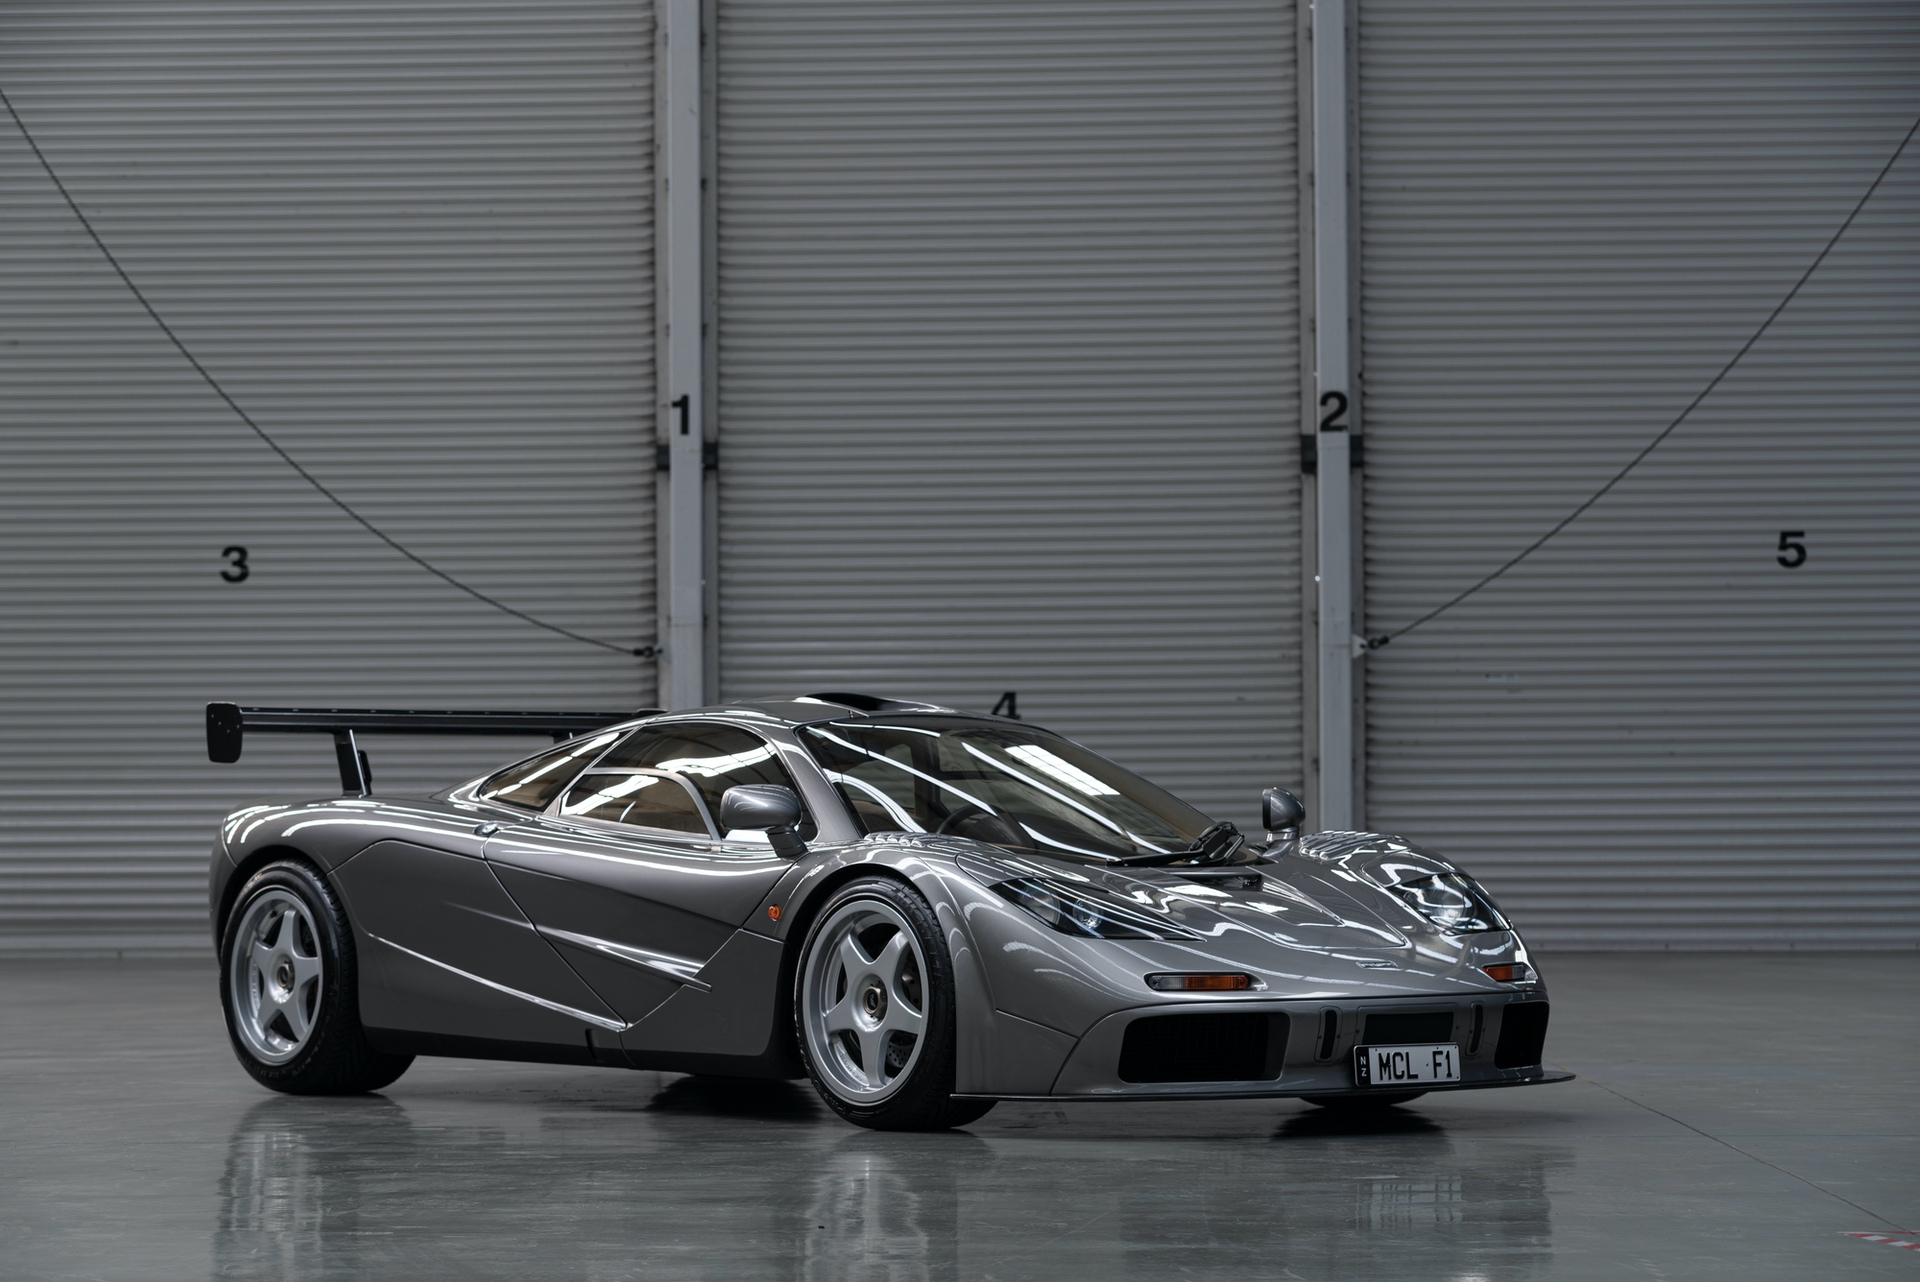 1994-McLaren-F1-LM-Specification-_52